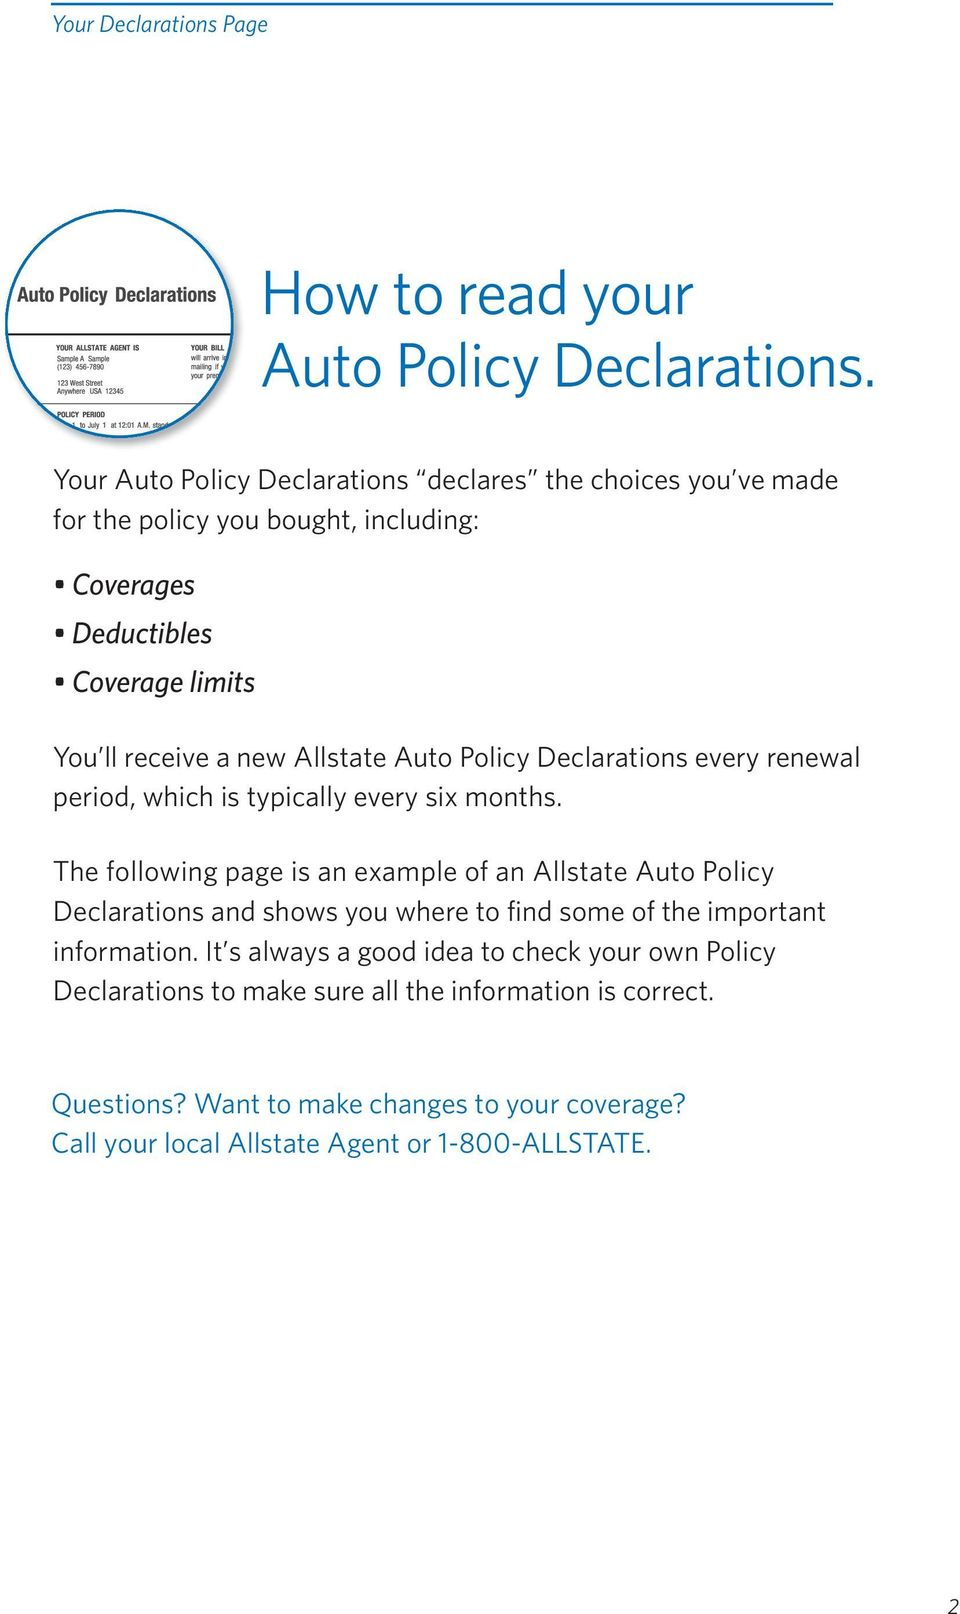 Allstate Auto Policy Declarations every renewal period, which is typically every six months.